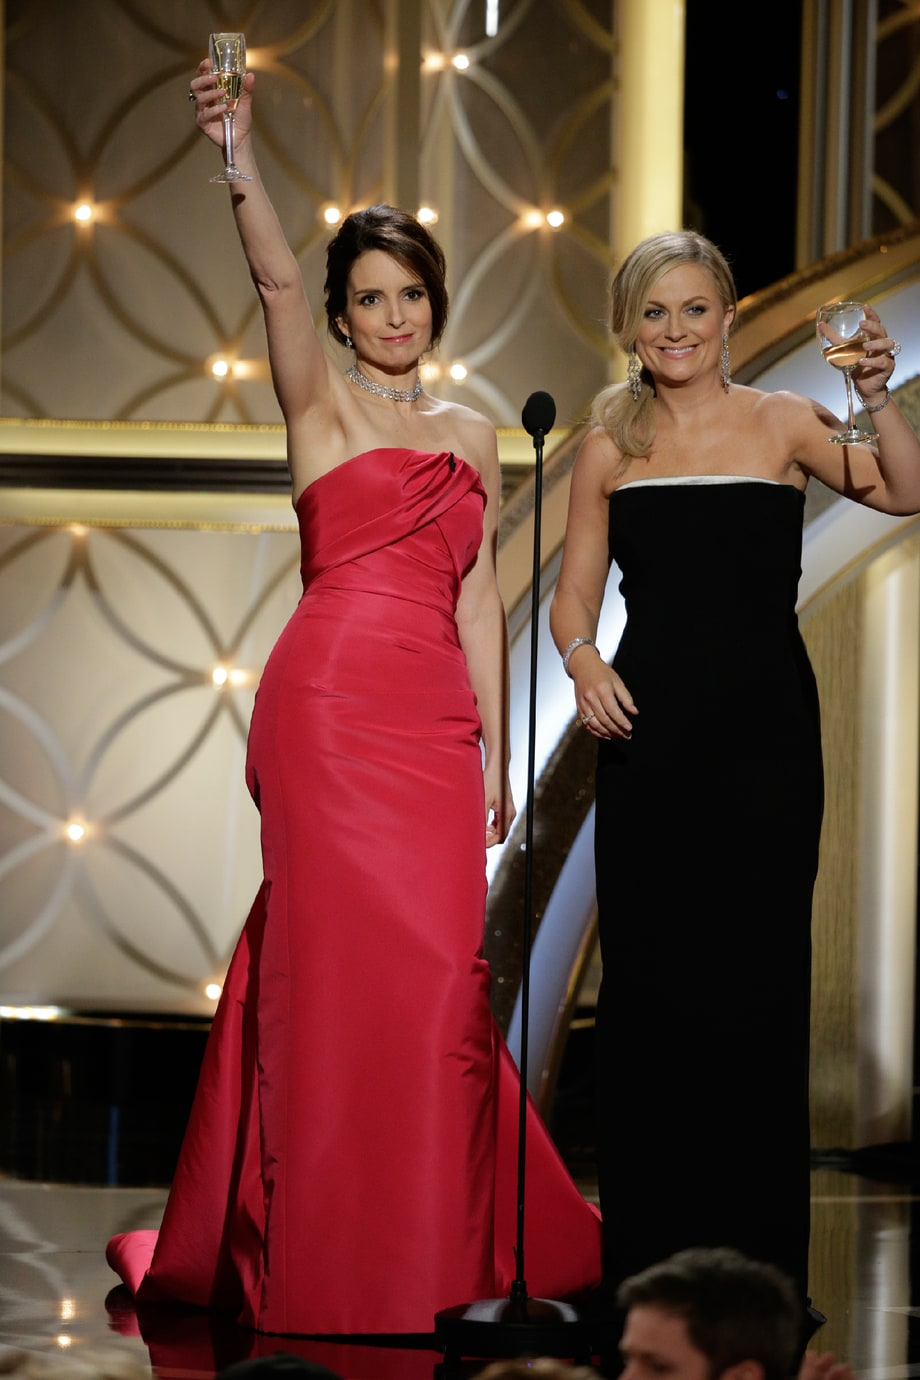 HIGH: Amy Poehler & Tina Fey Ruling Everything